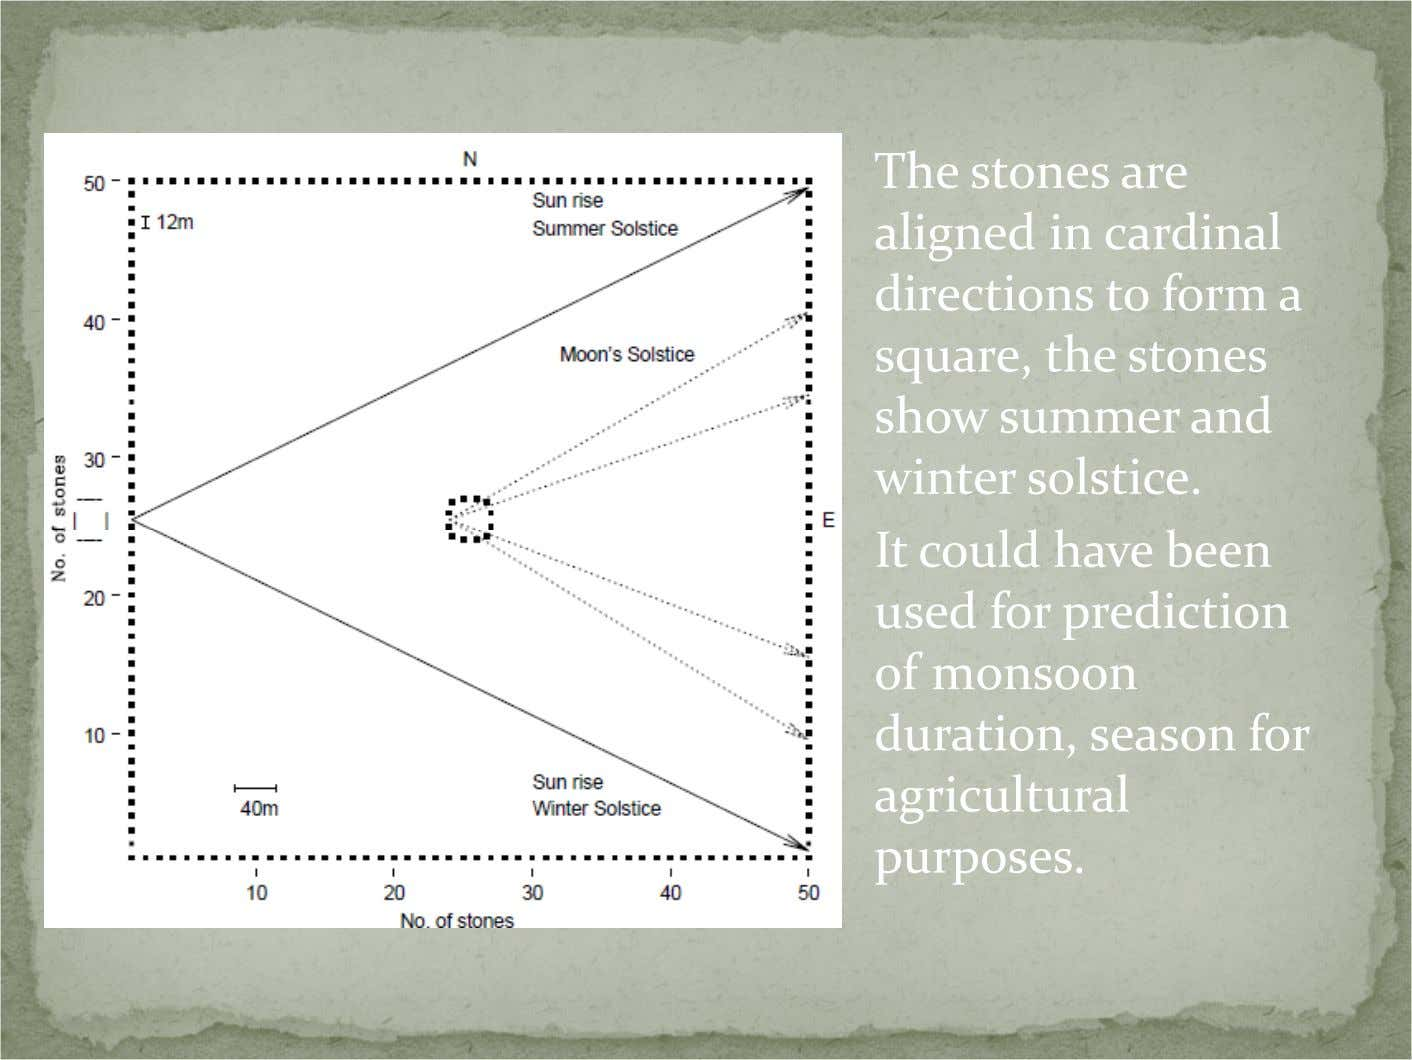 The stones are aligned in cardinal directions to form a square, the stones show summer